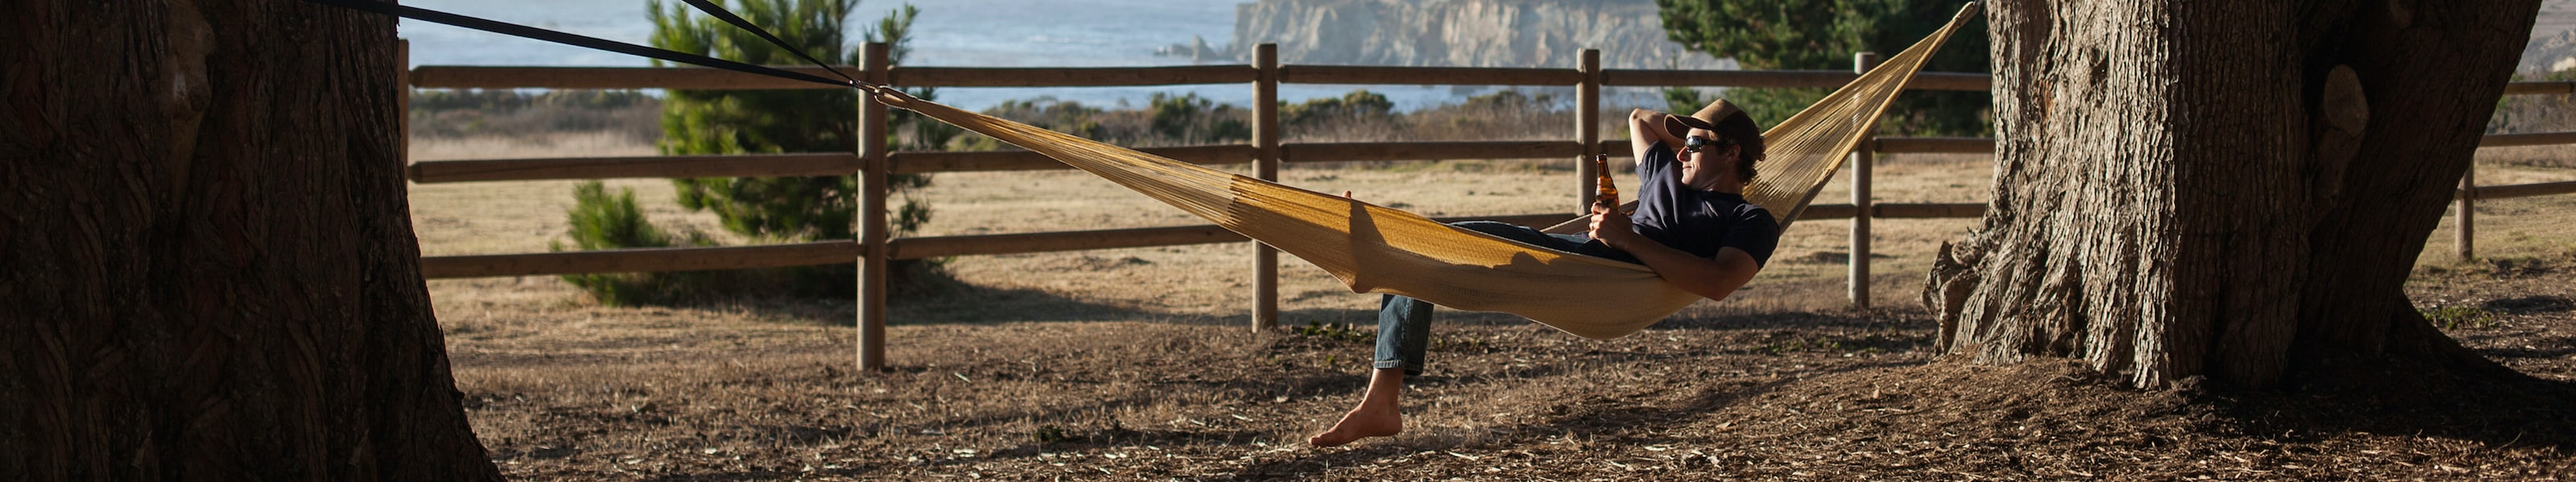 big sur hammock 5 lifestyle shop yellow leaf hammocks   huckberry  rh   huckberry